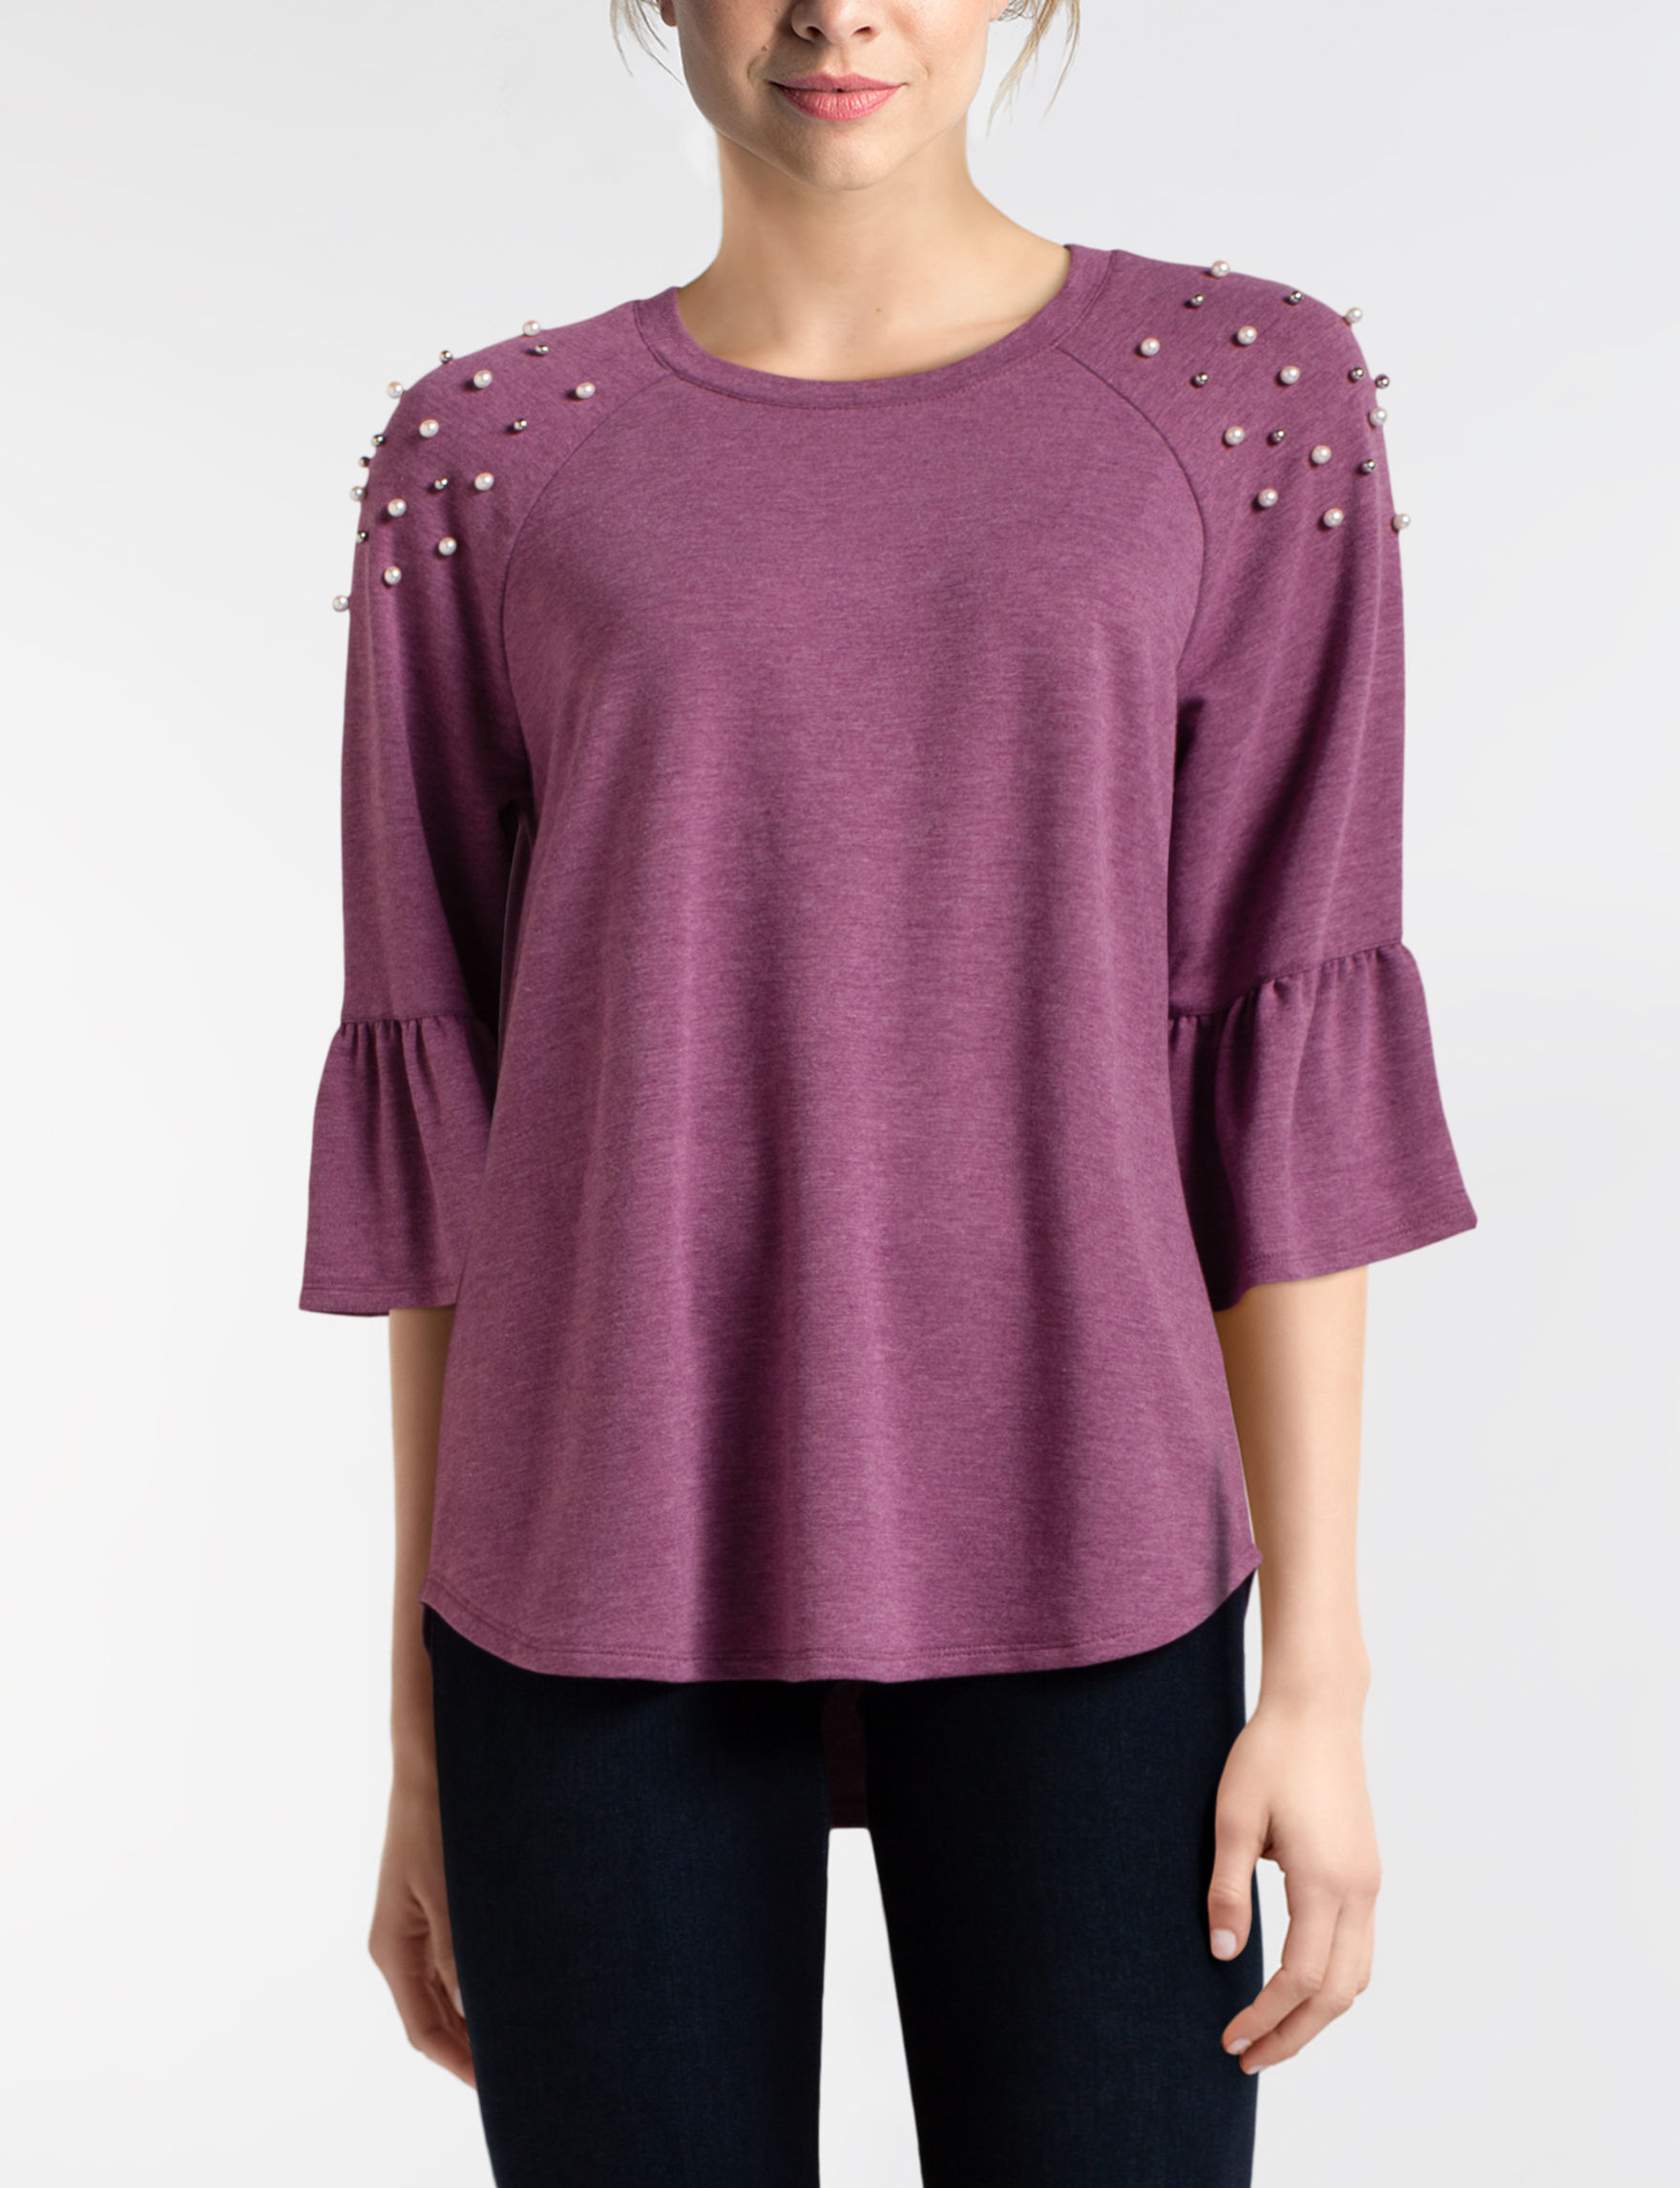 AGB Berry Shirts & Blouses